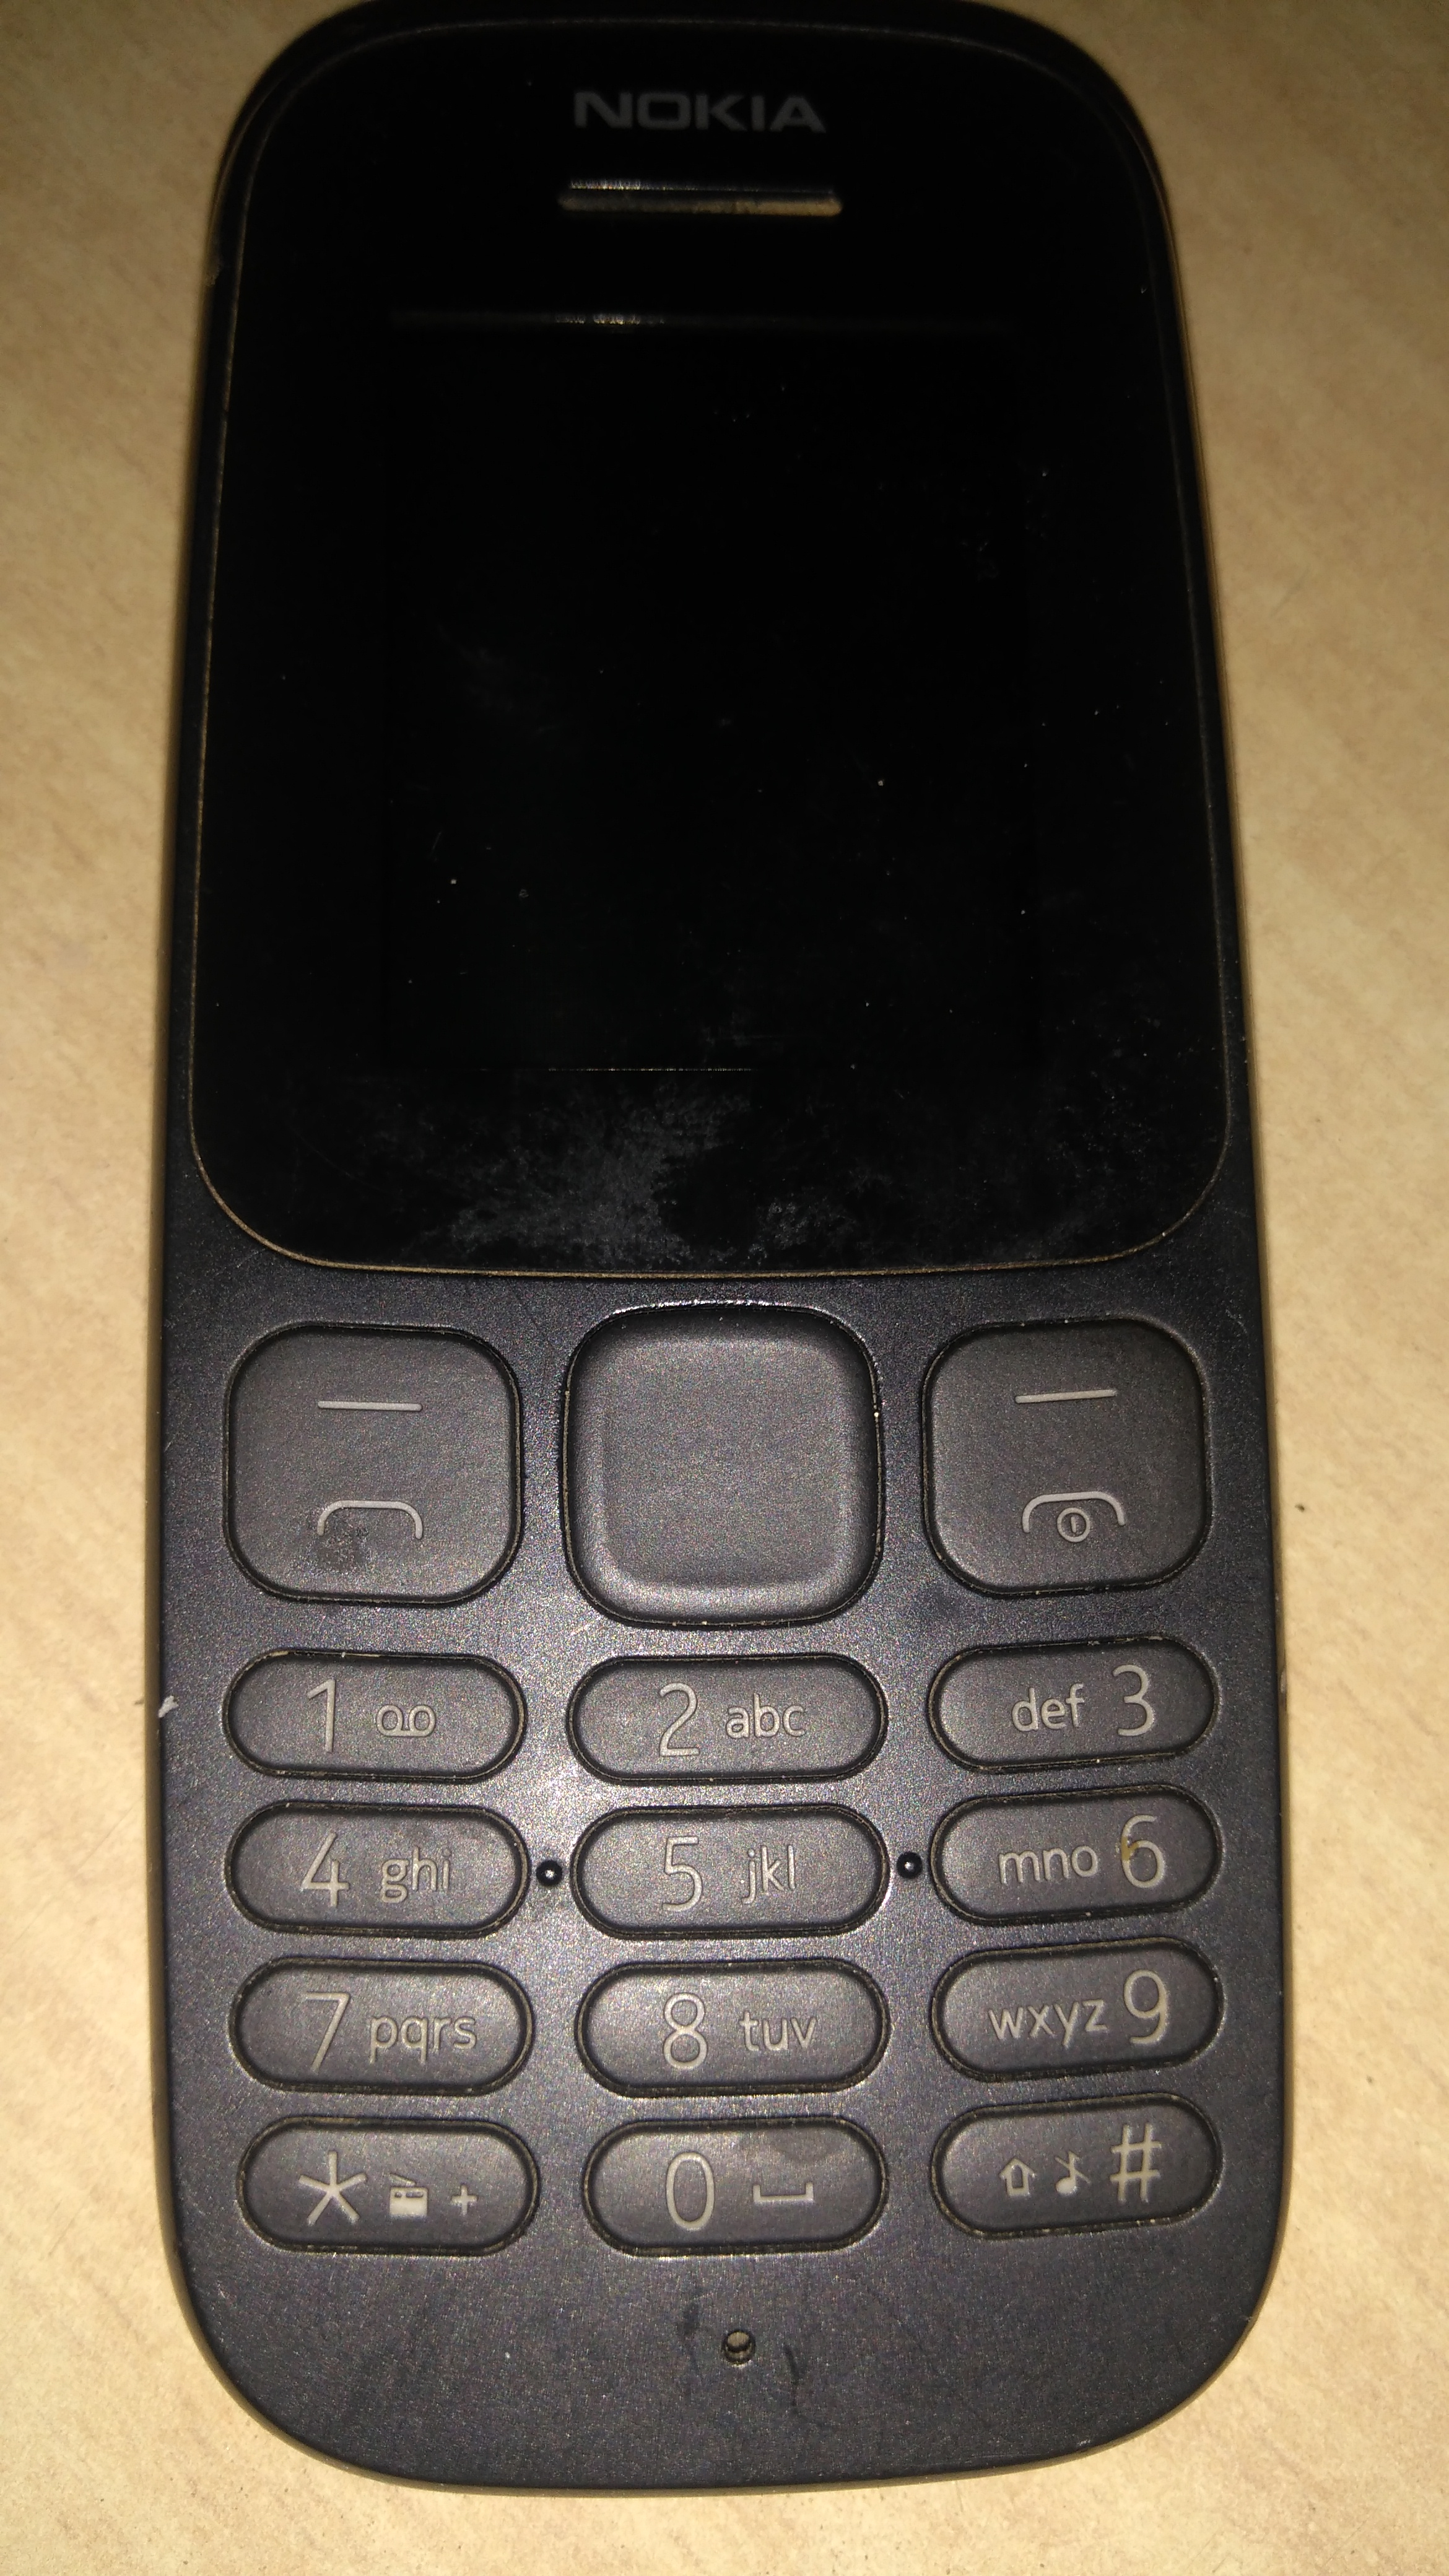 Just for calling - NOKIA 105 User Review - MouthShut com